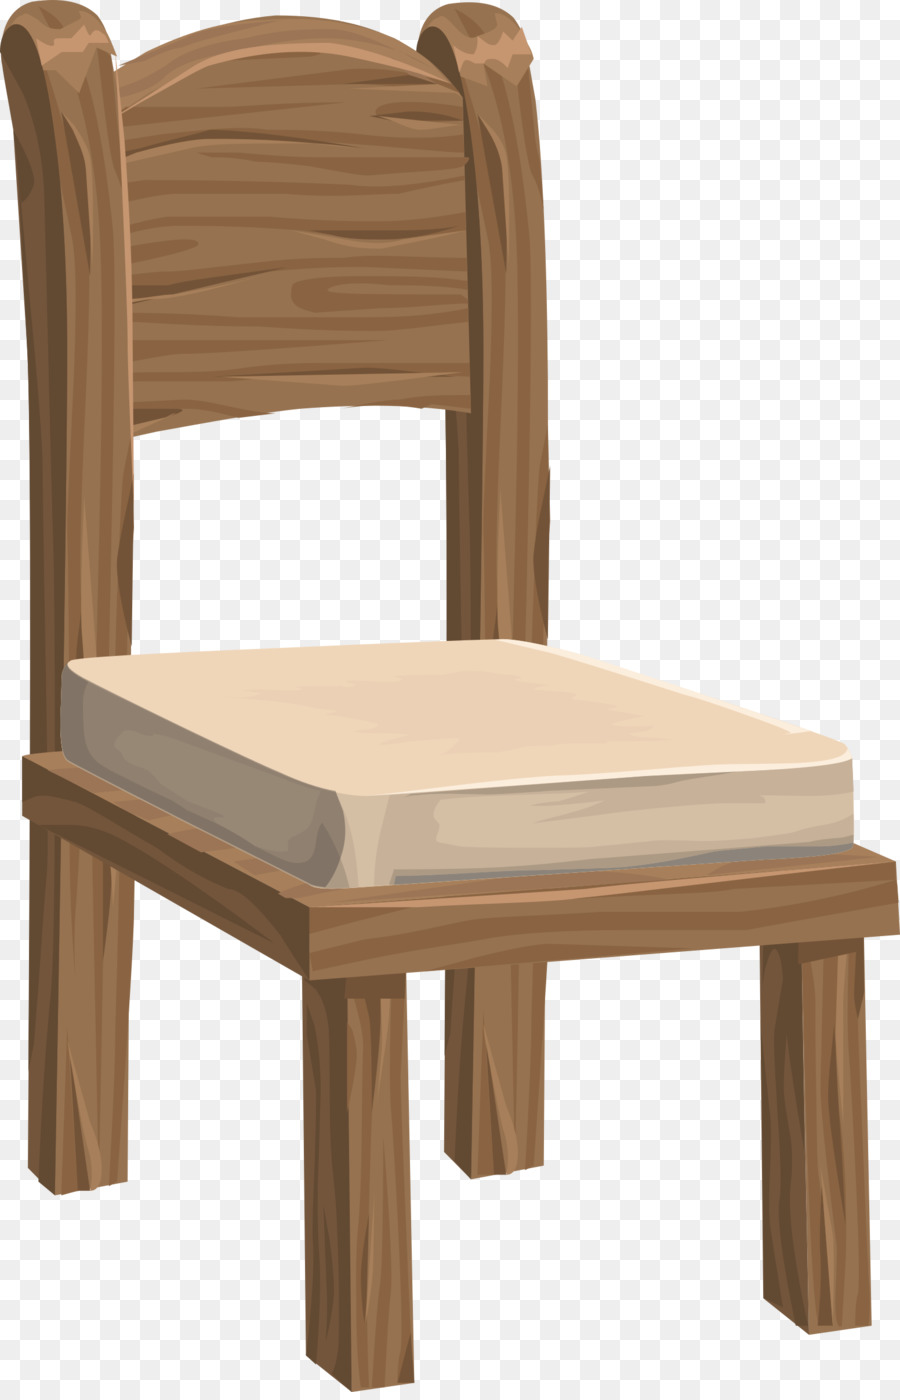 Chair clipart photo clipart library stock Wood Table clipart - Chair, Table, Furniture, transparent clip art clipart library stock